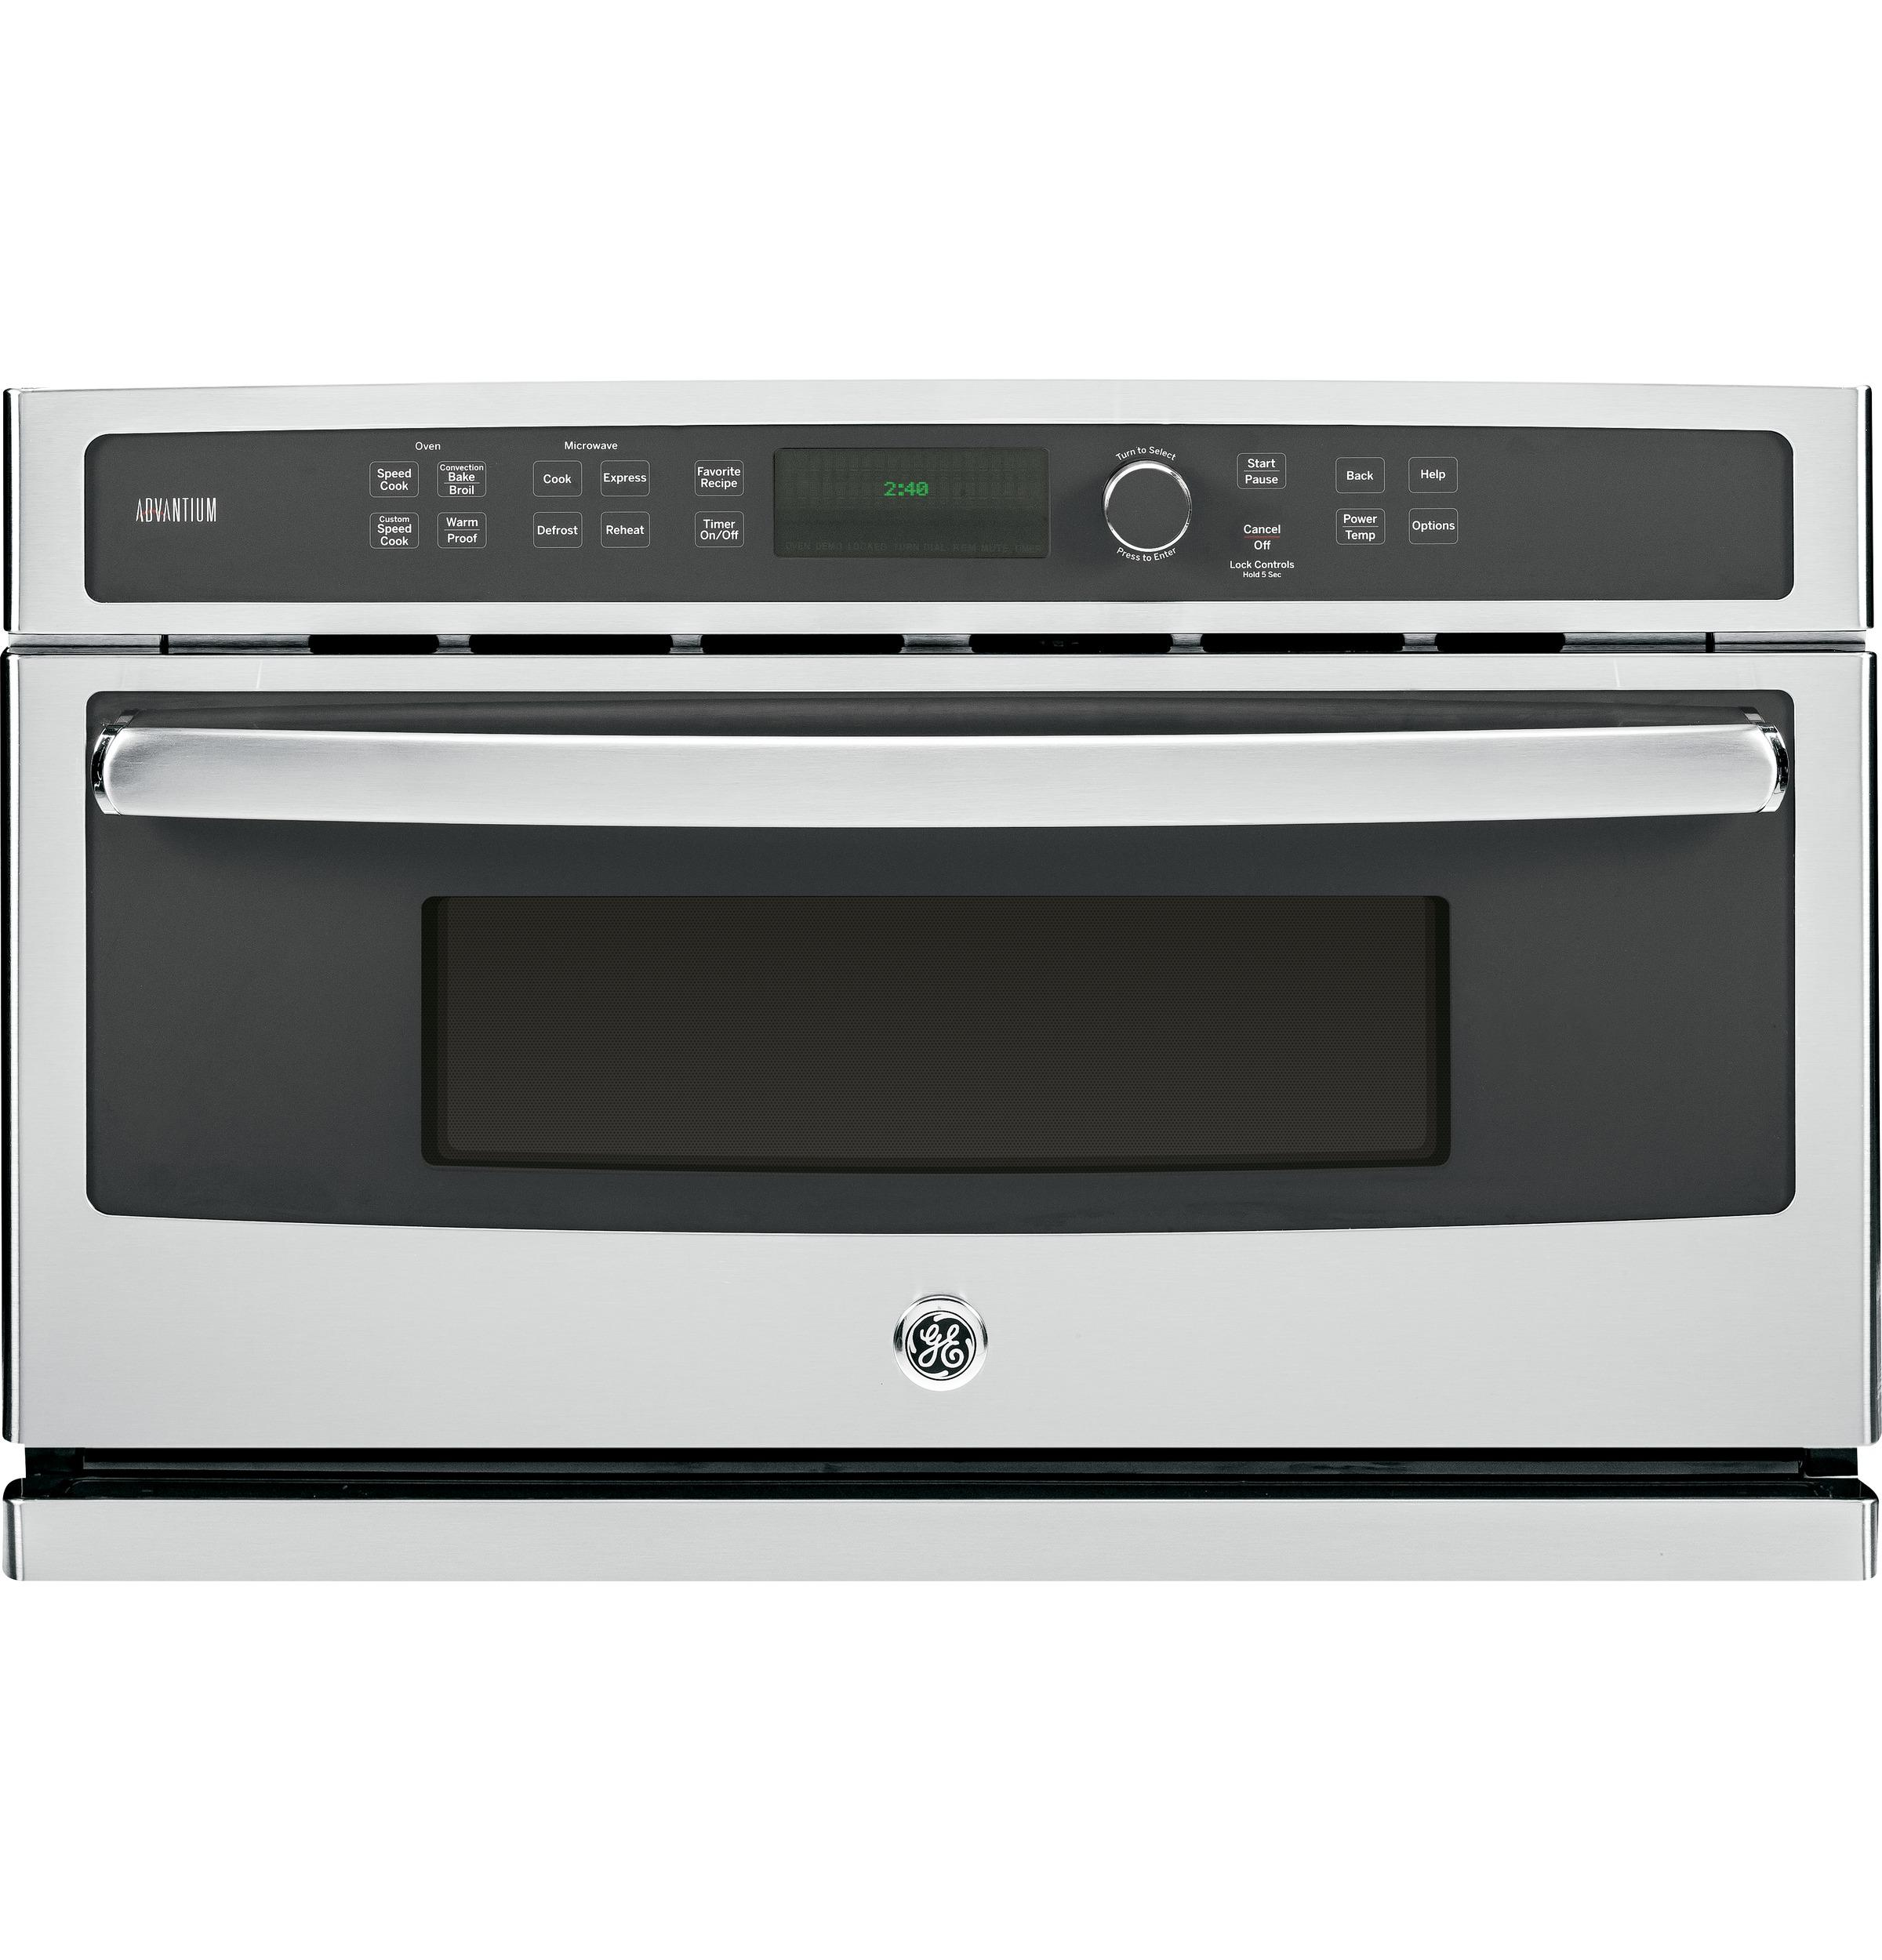 GE Appliances Electric Wall Oven 30 in. 4-in-1 Wall Oven - Item Number: PSB9240SFSS